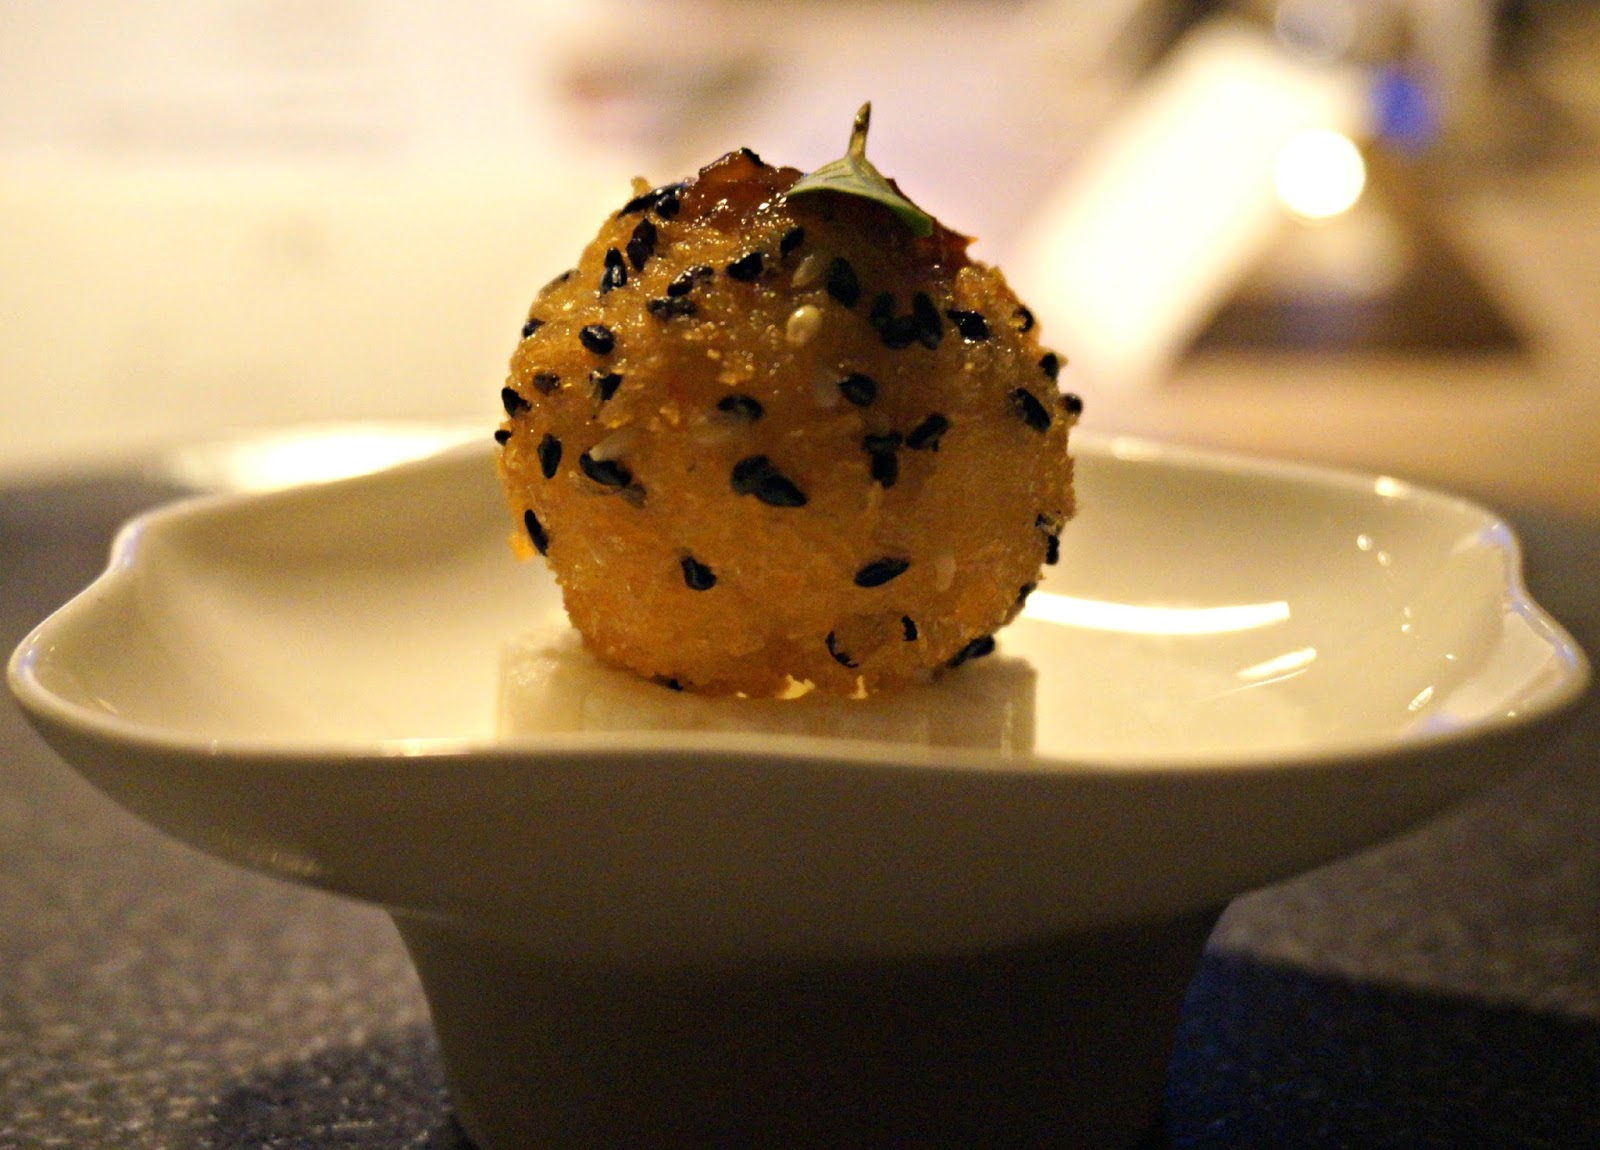 deep-fried prawn and fois gras croquette with black truffle sauce